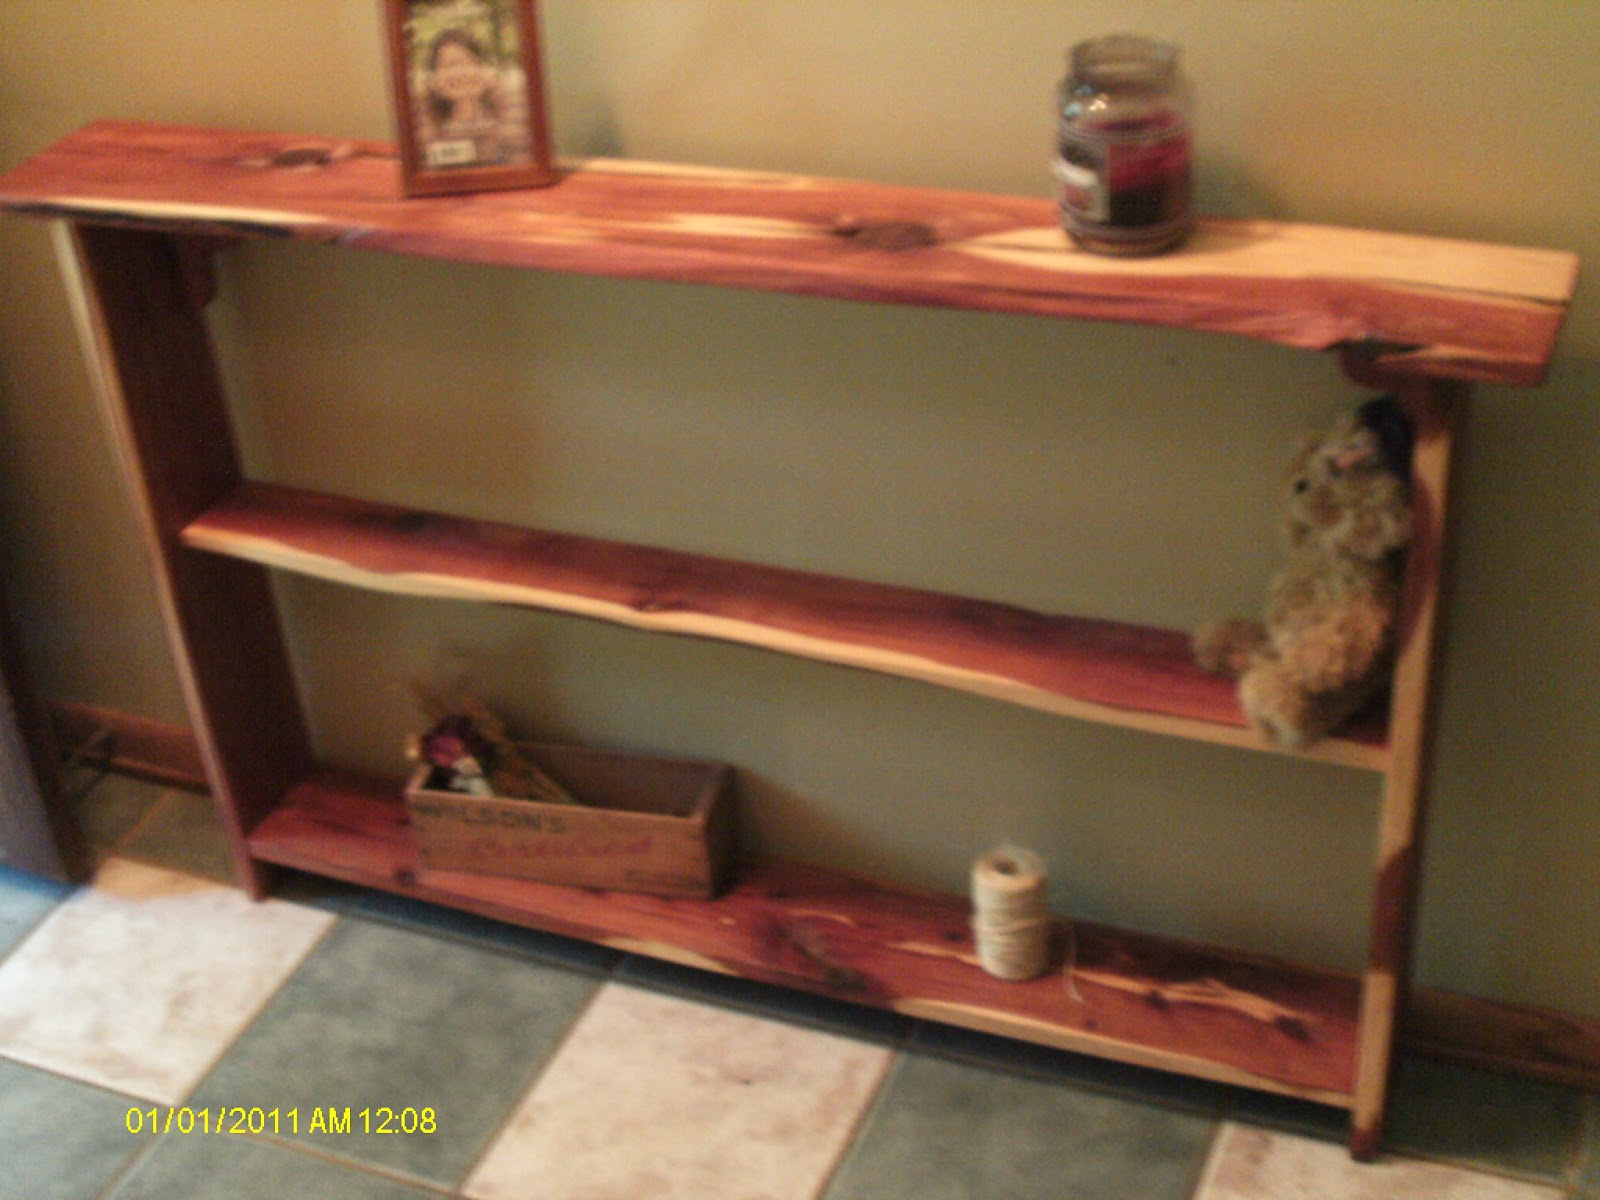 Rustic amp Log Furniture Cedar Entry Way TableShelf And Boxes